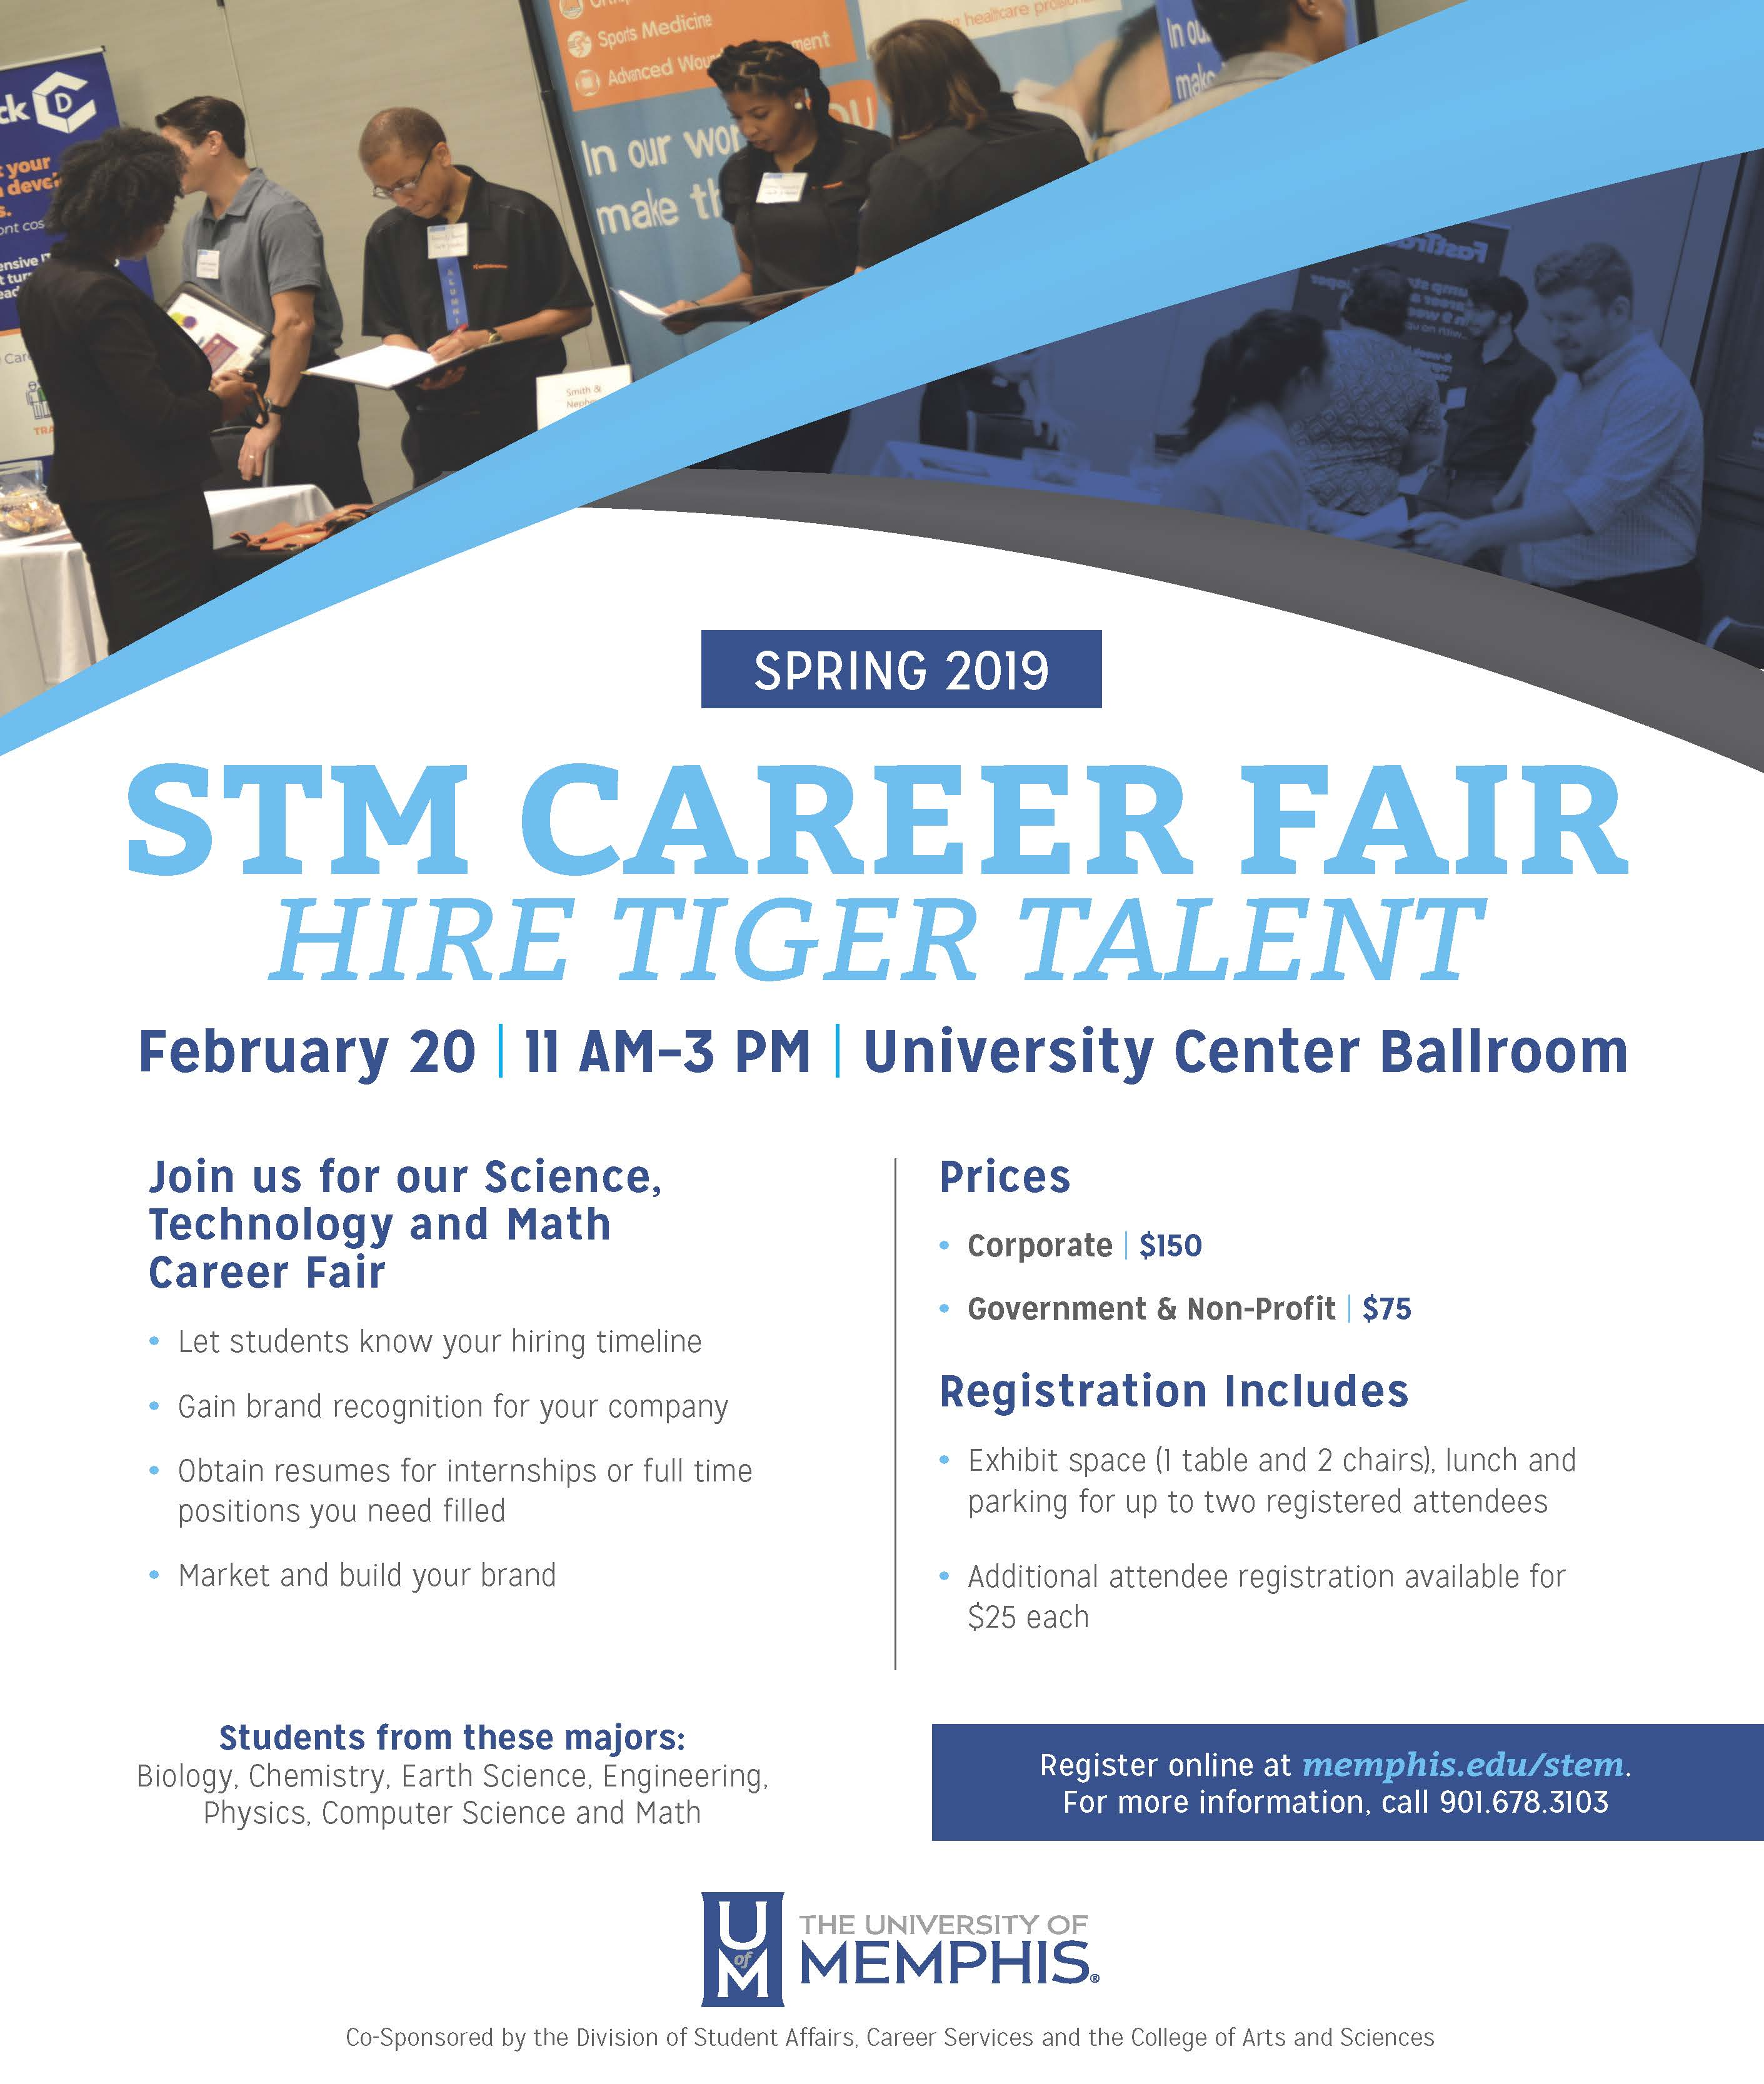 STM Career Fair Spring 2019